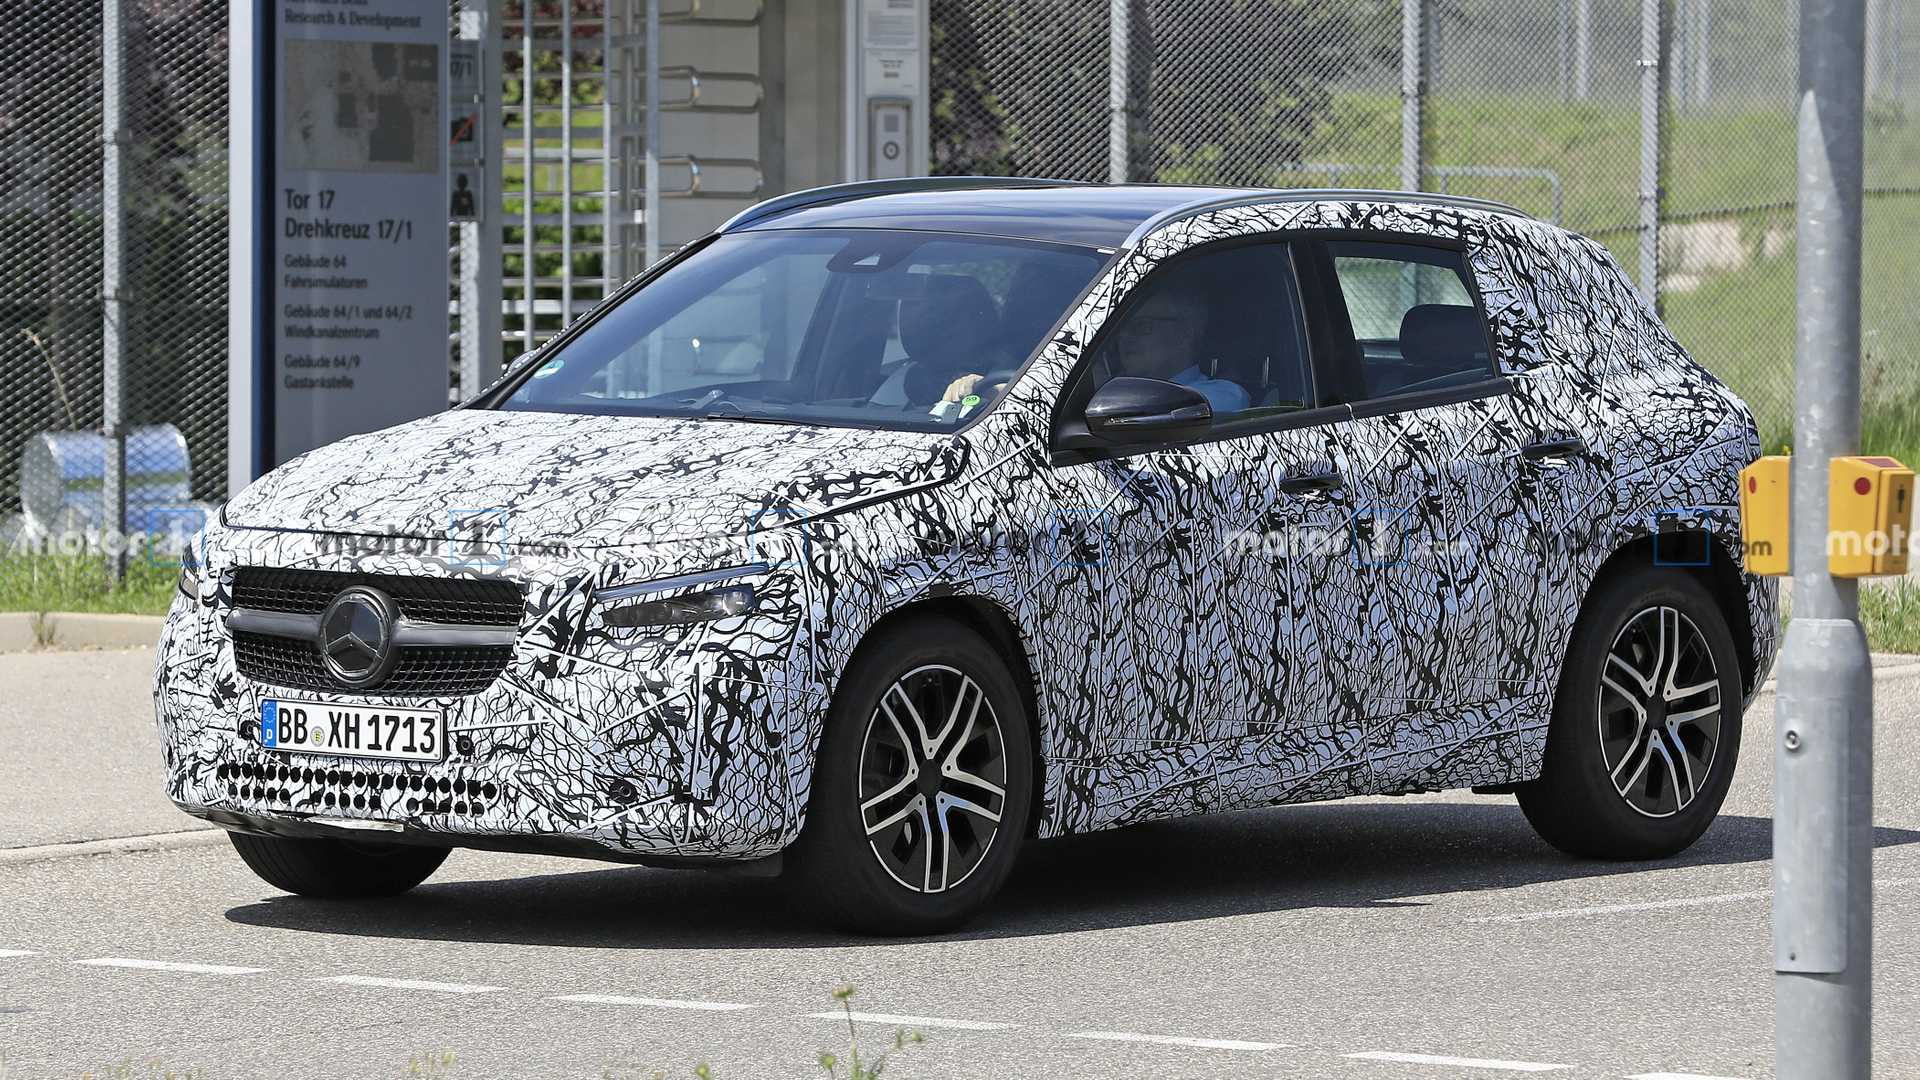 New Mercedes Benz Gla Class Spied On The Street Looking Sharp